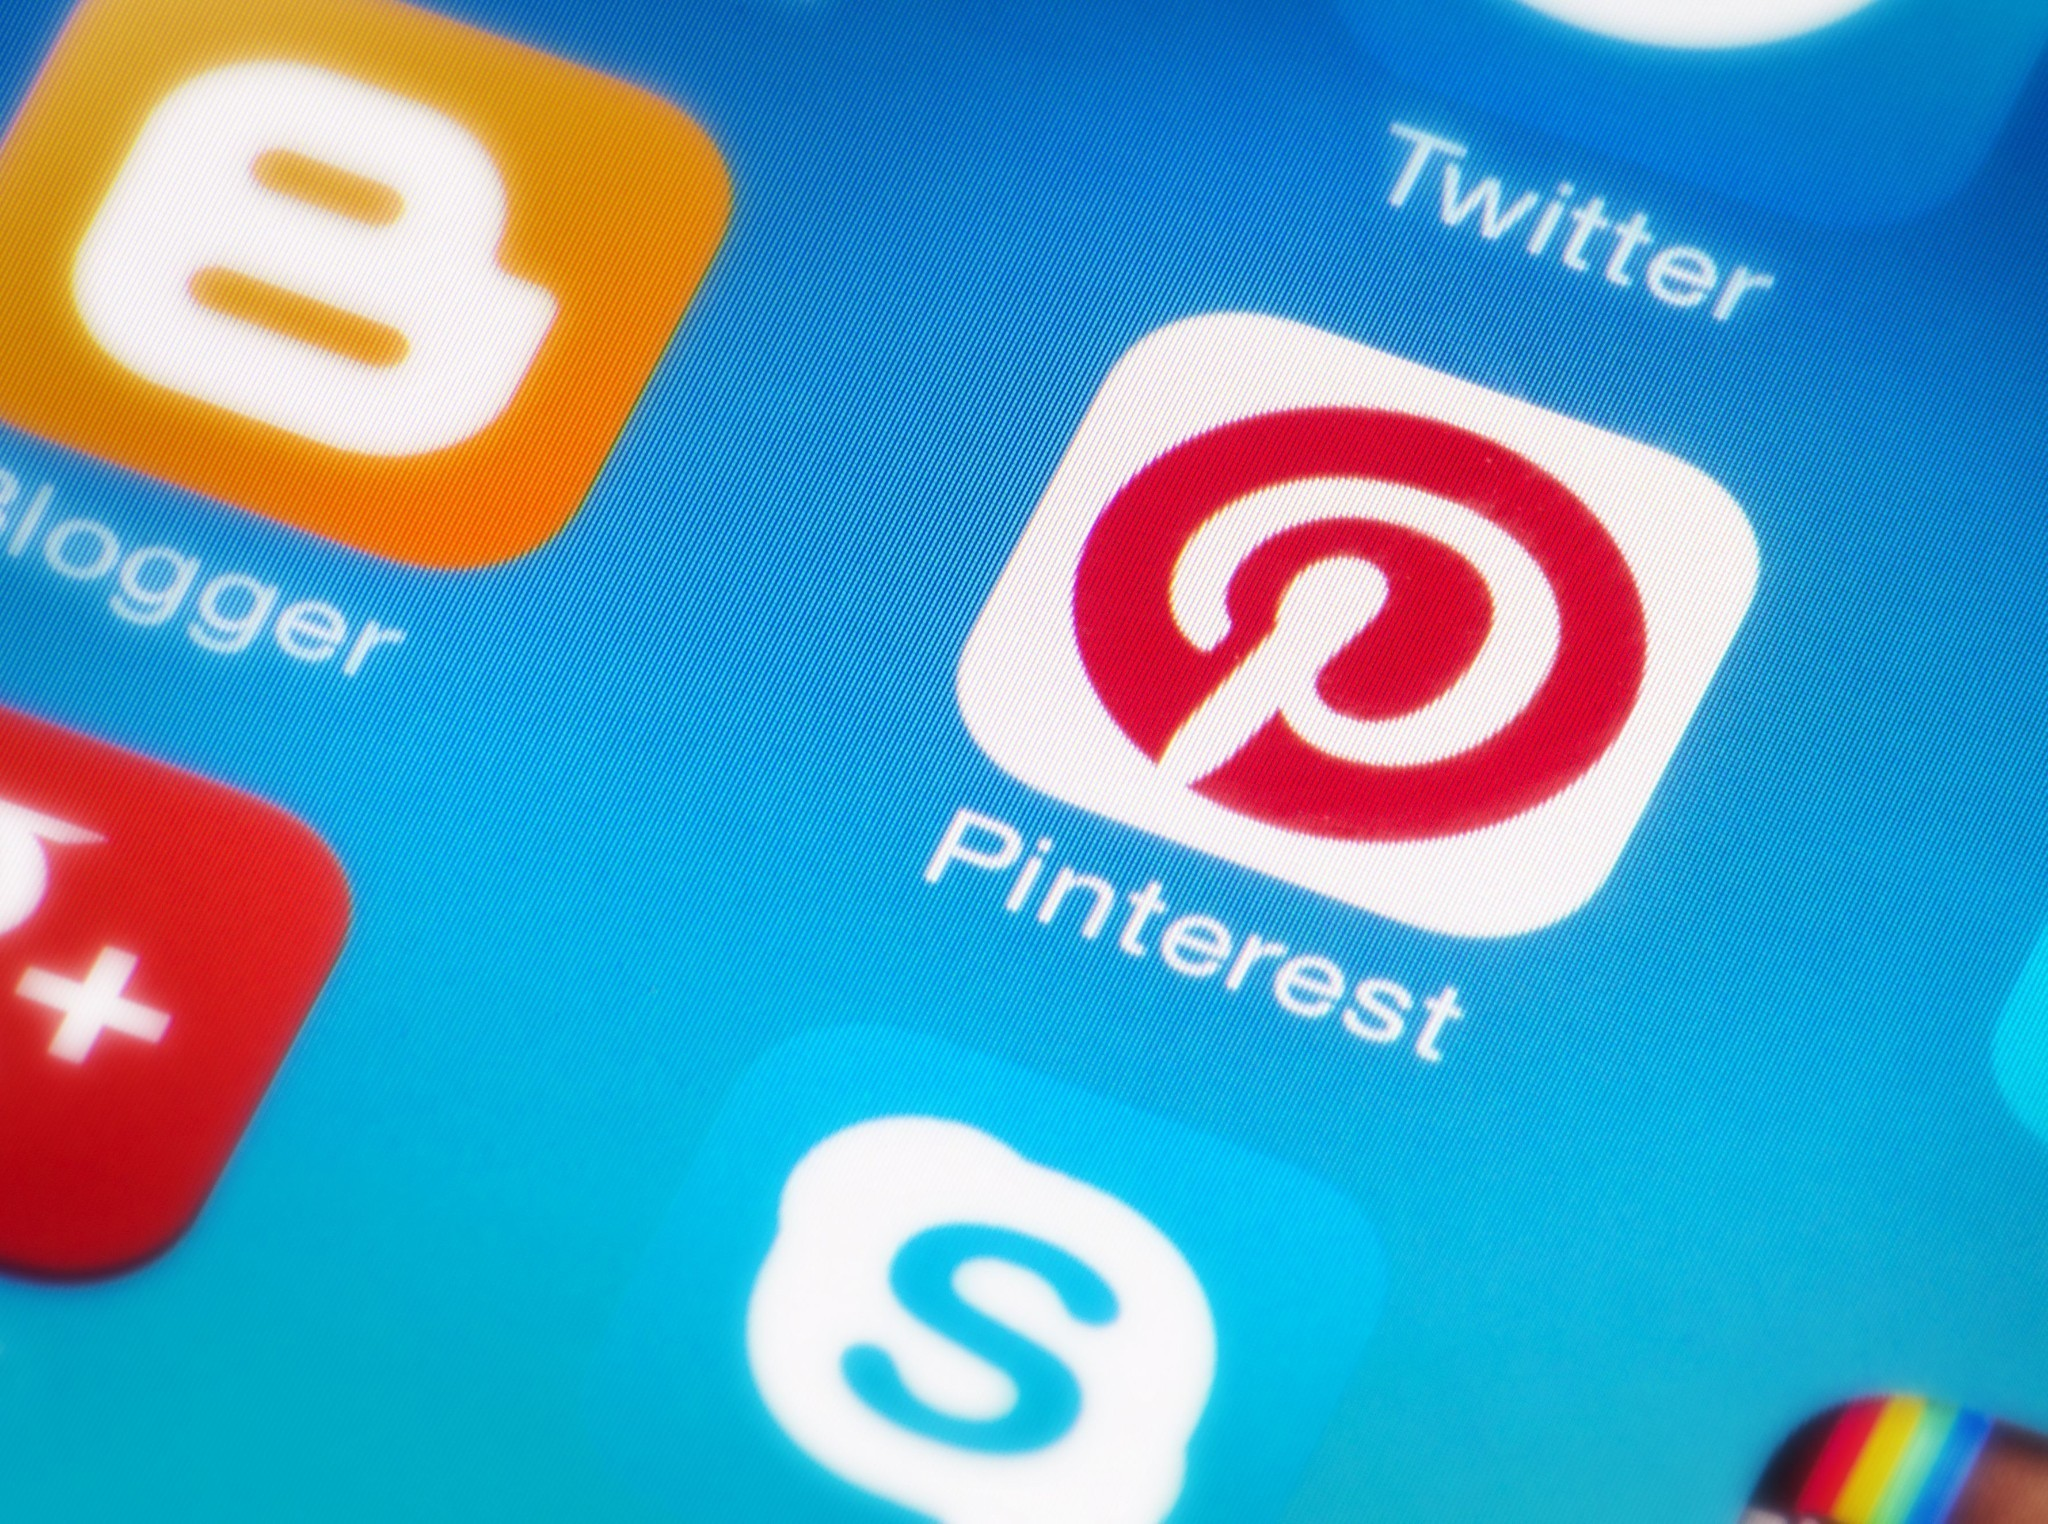 Here's how one marketing firm is tackling the Pinterest problem